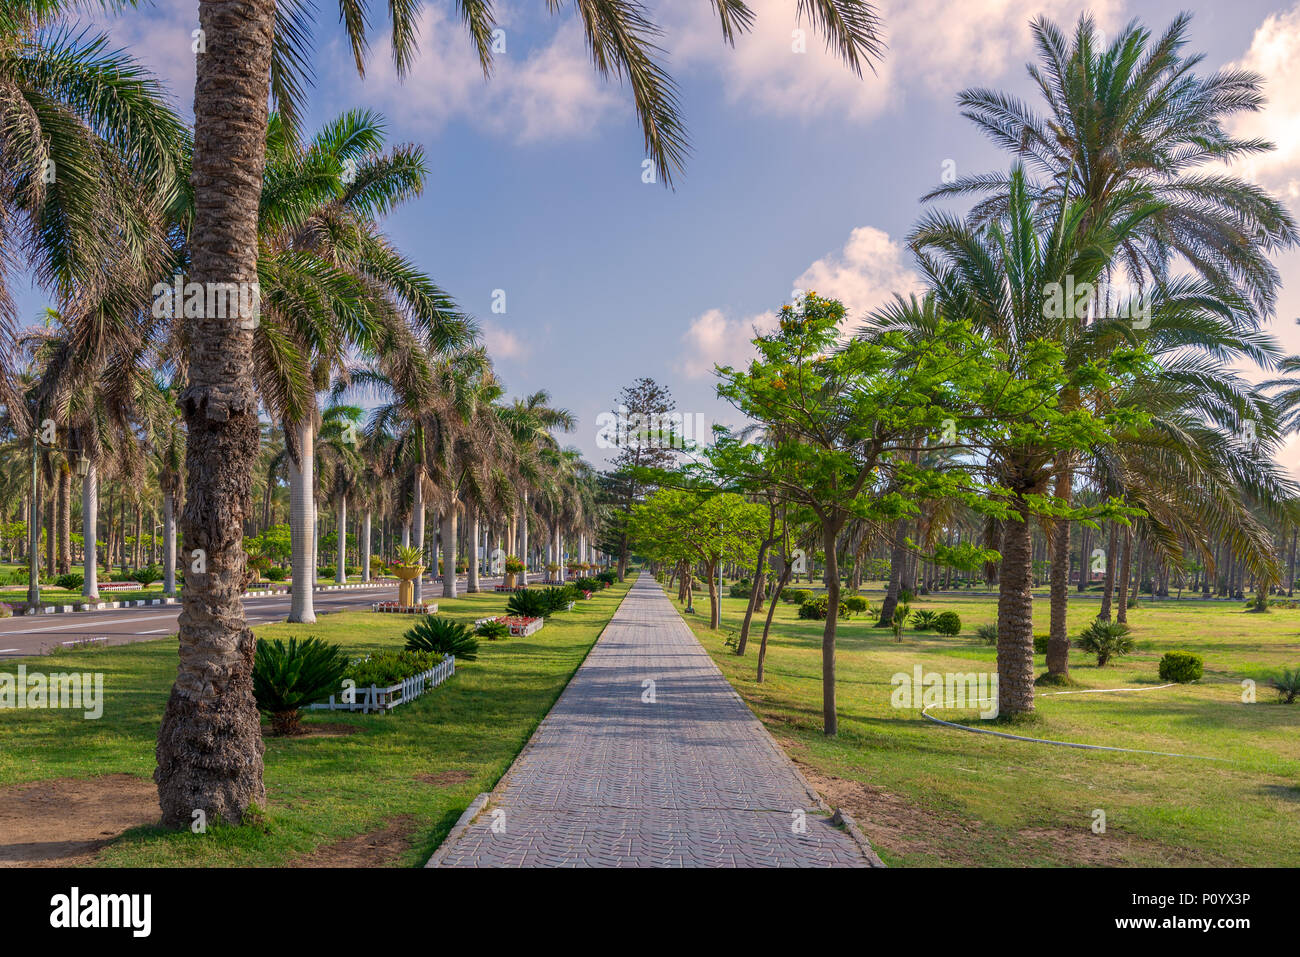 Pedestrian walkway framed with trees and palm trees on both sides with partly cloudy sky in a summer day, Montana public park, Alexandria, Egypt - Stock Image